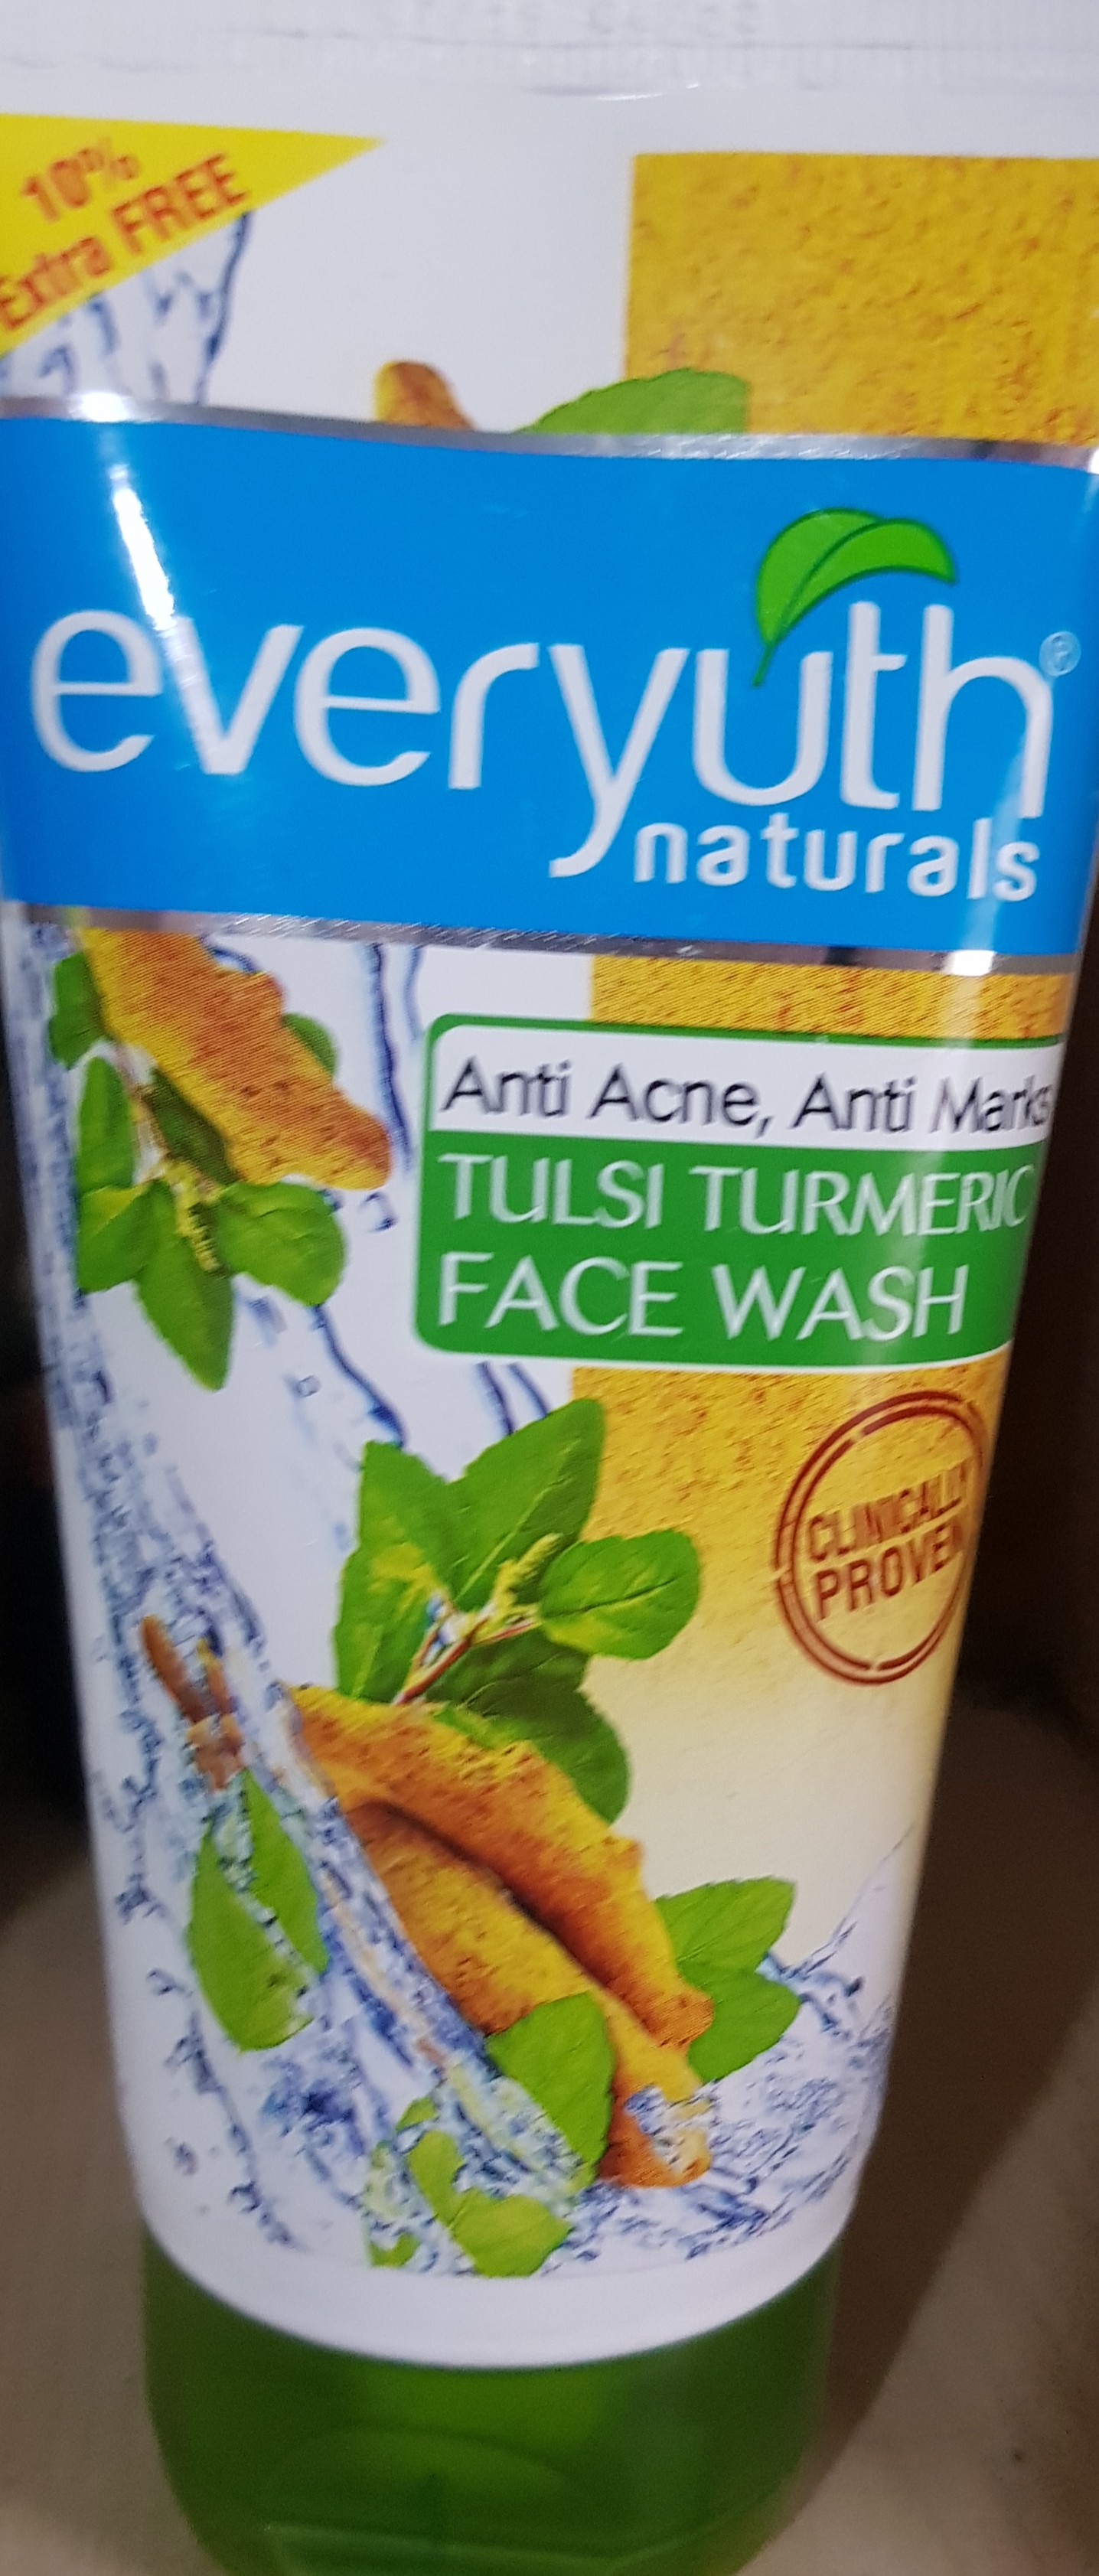 Everyuth Tulsi Turmeric Face Wash-Controls Oil-By vaishali_0111